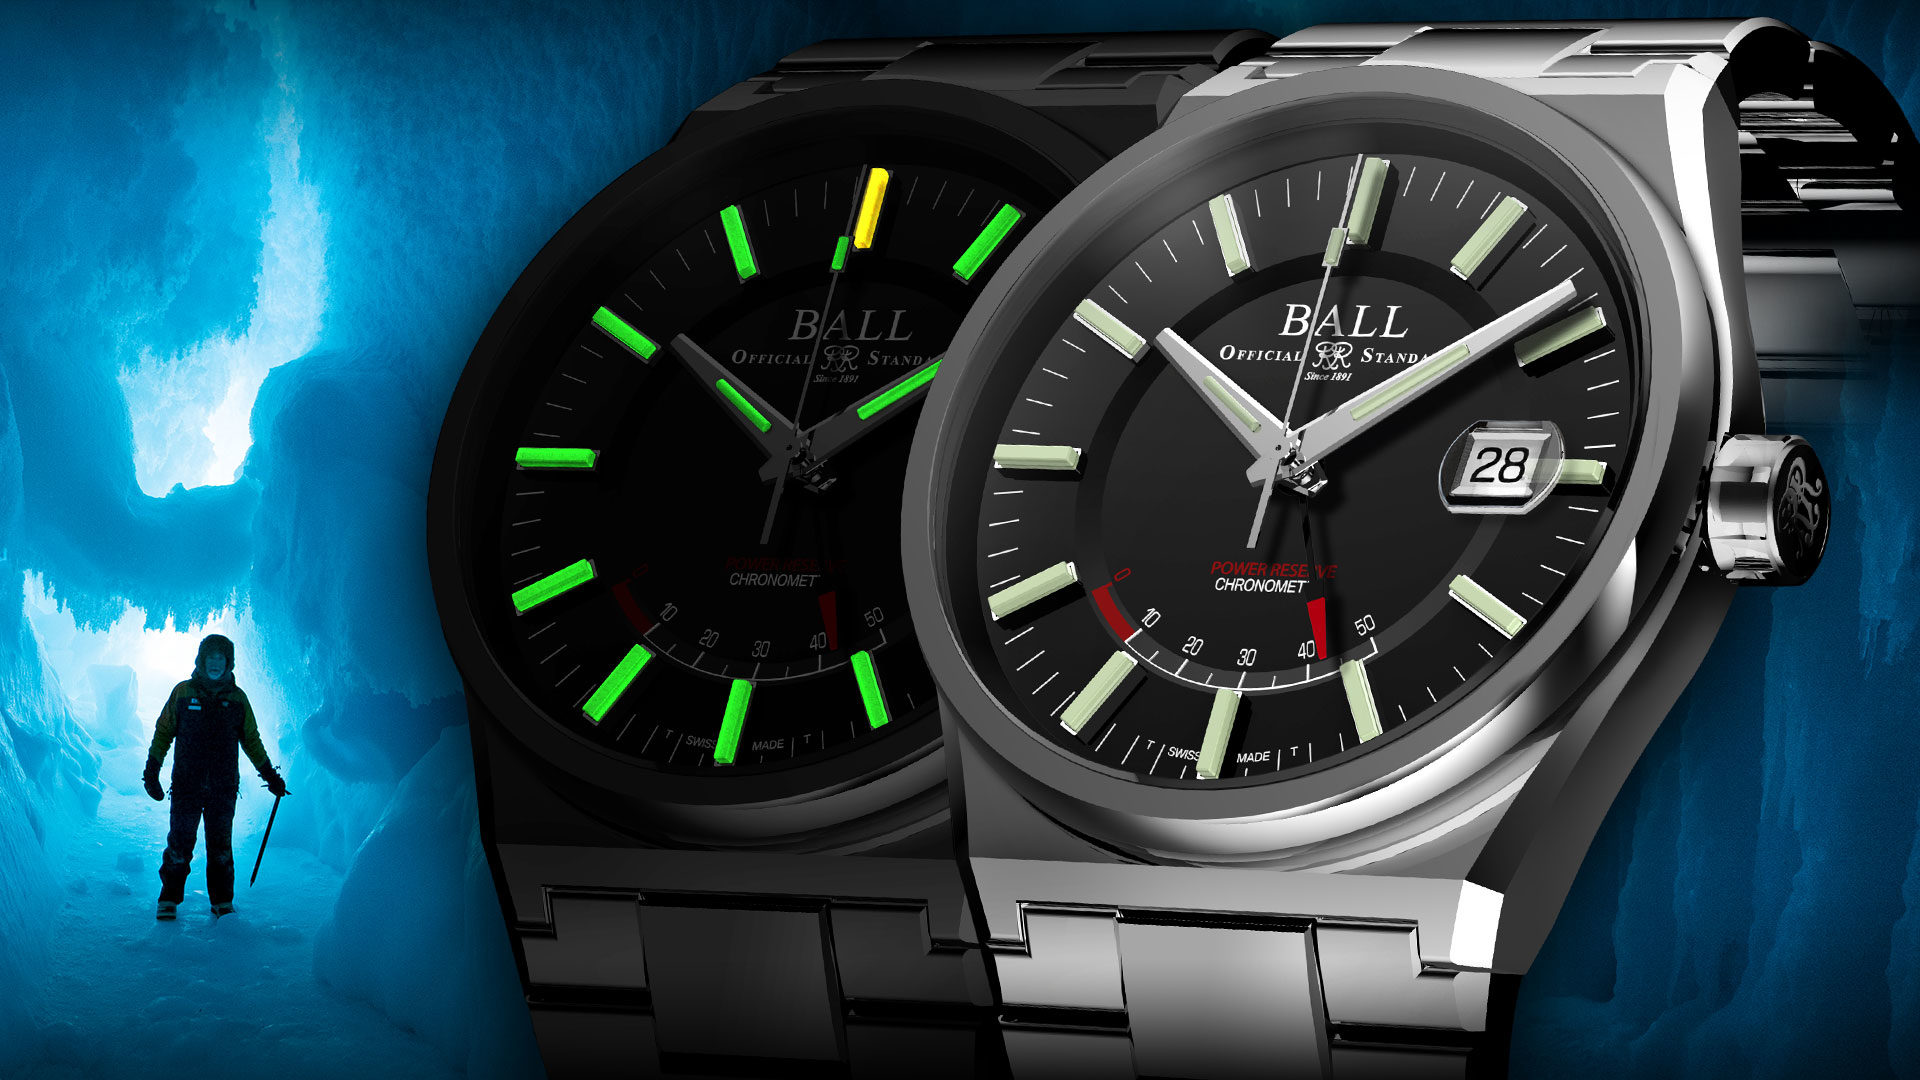 The Ball Roadmaster Icebreaker is the epitome of what a tool watch is supposed to be